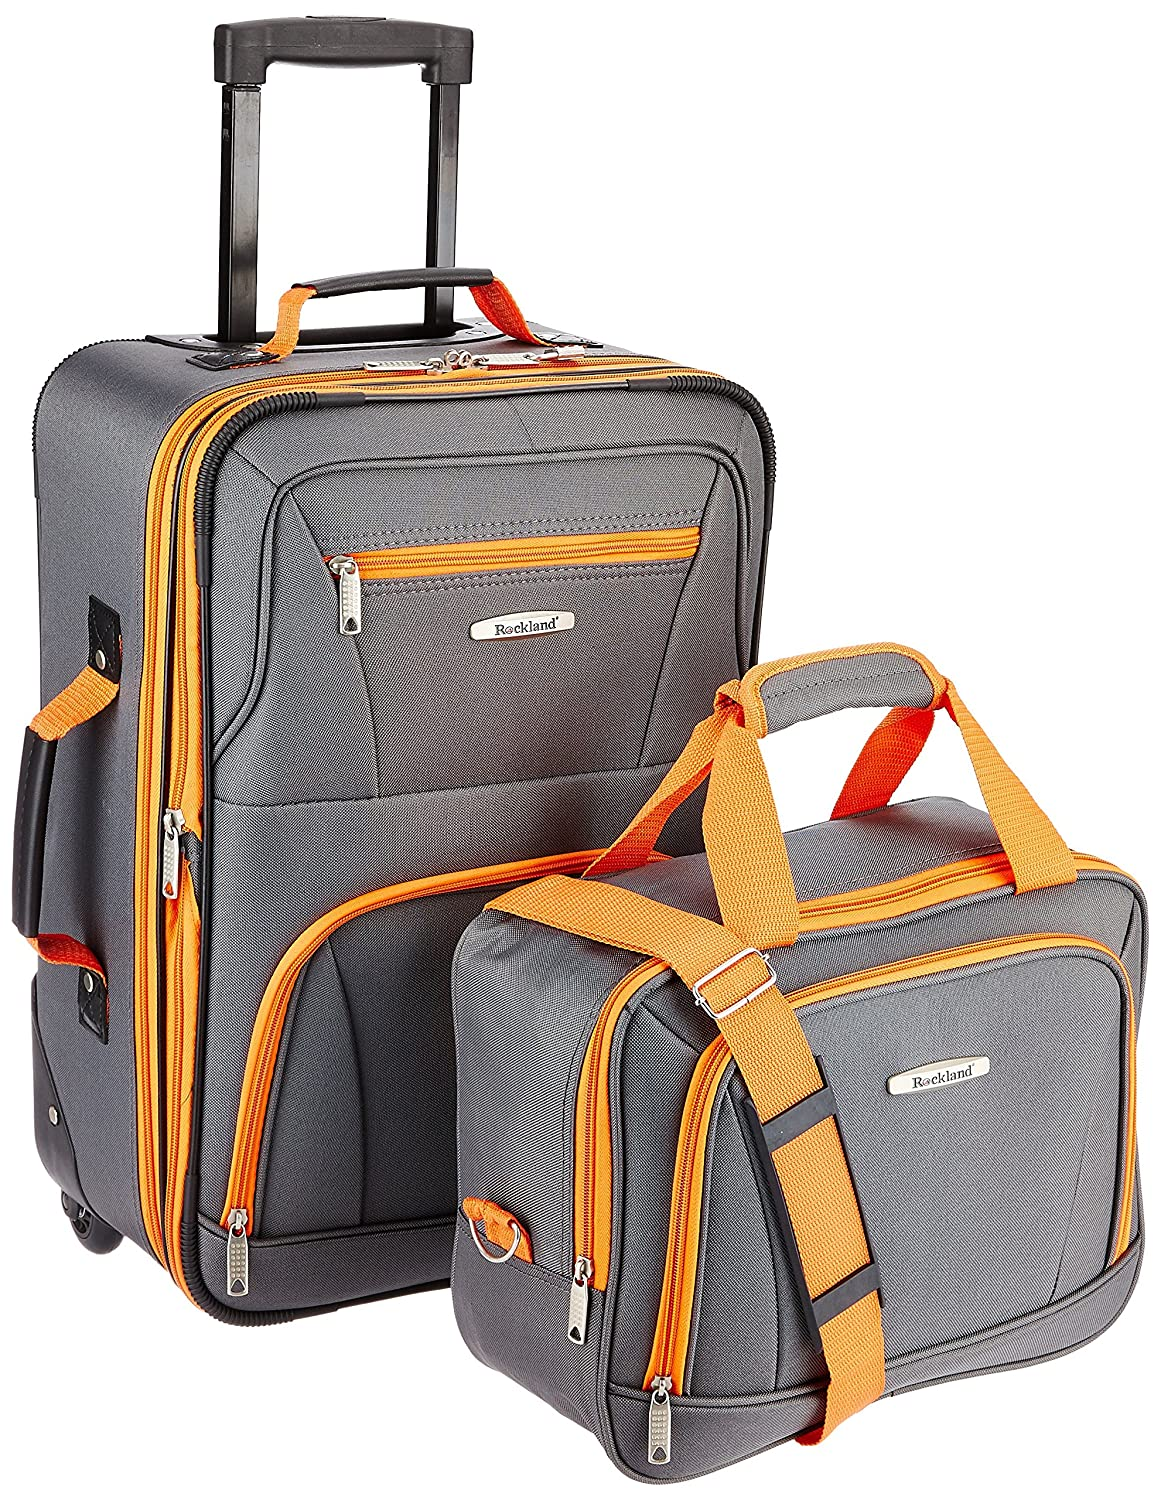 Rockland Two Piece Carry On Cases